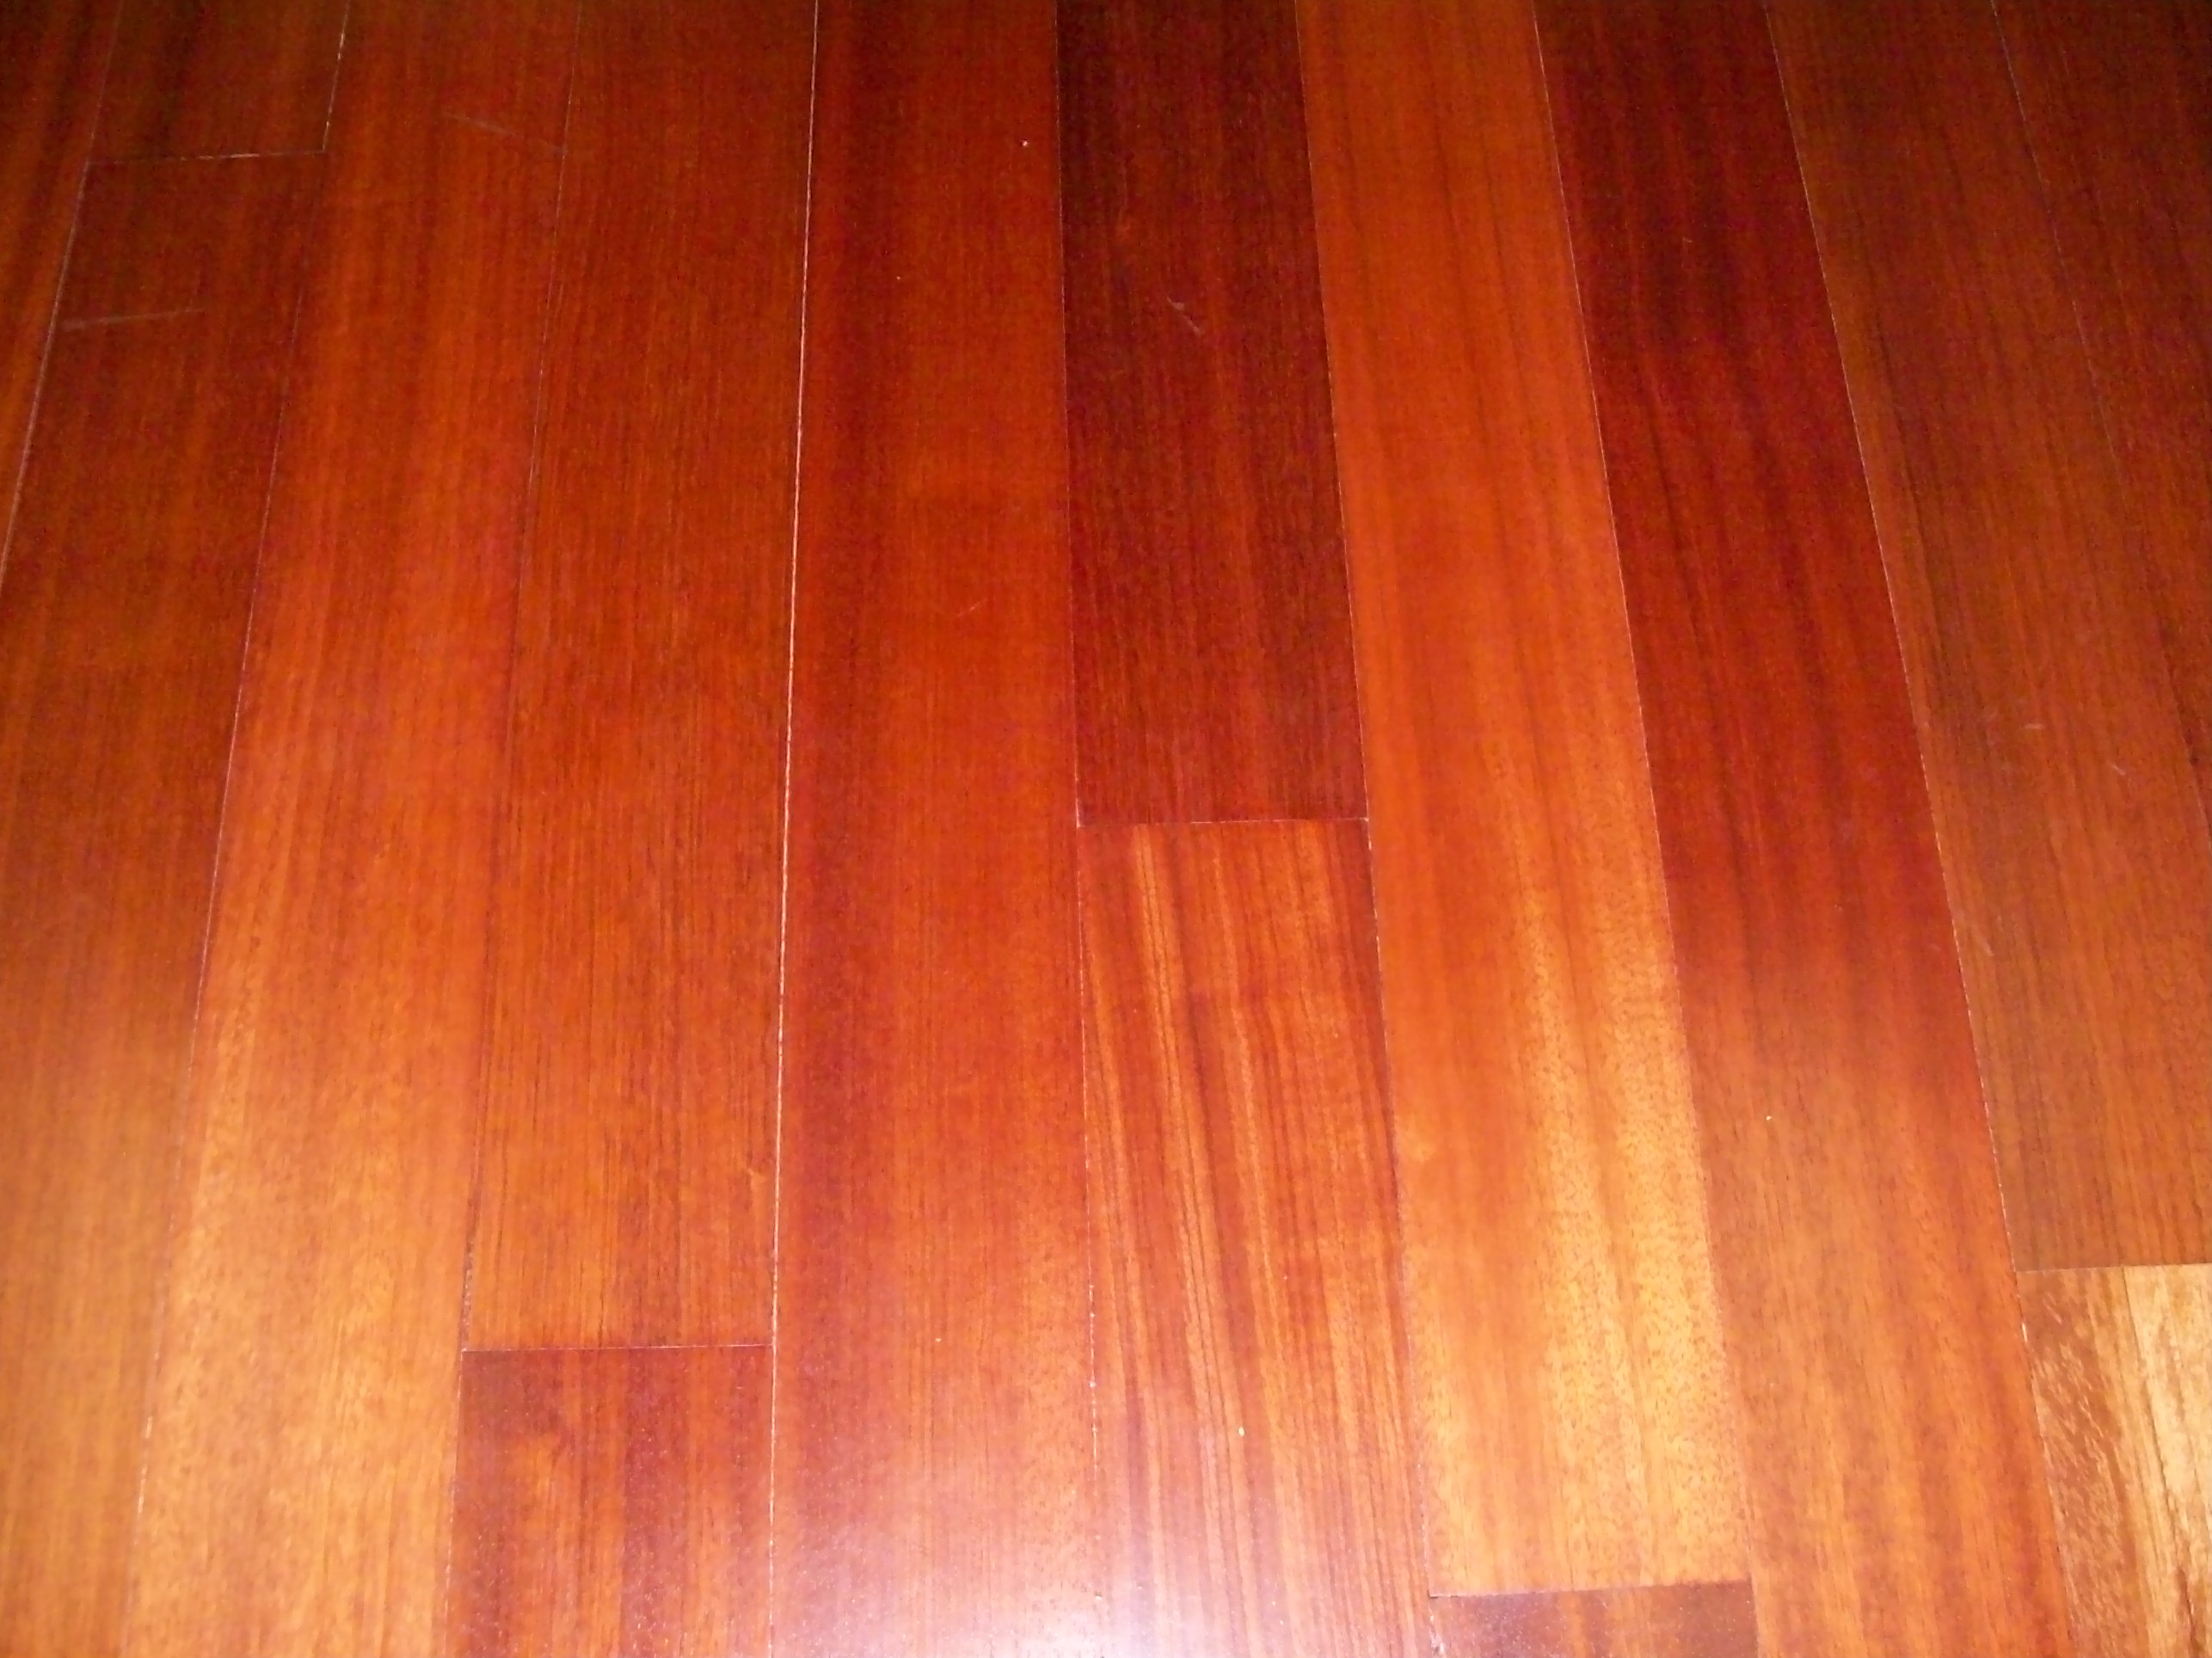 Main Difference Between Hardwood And Laminate Flooring